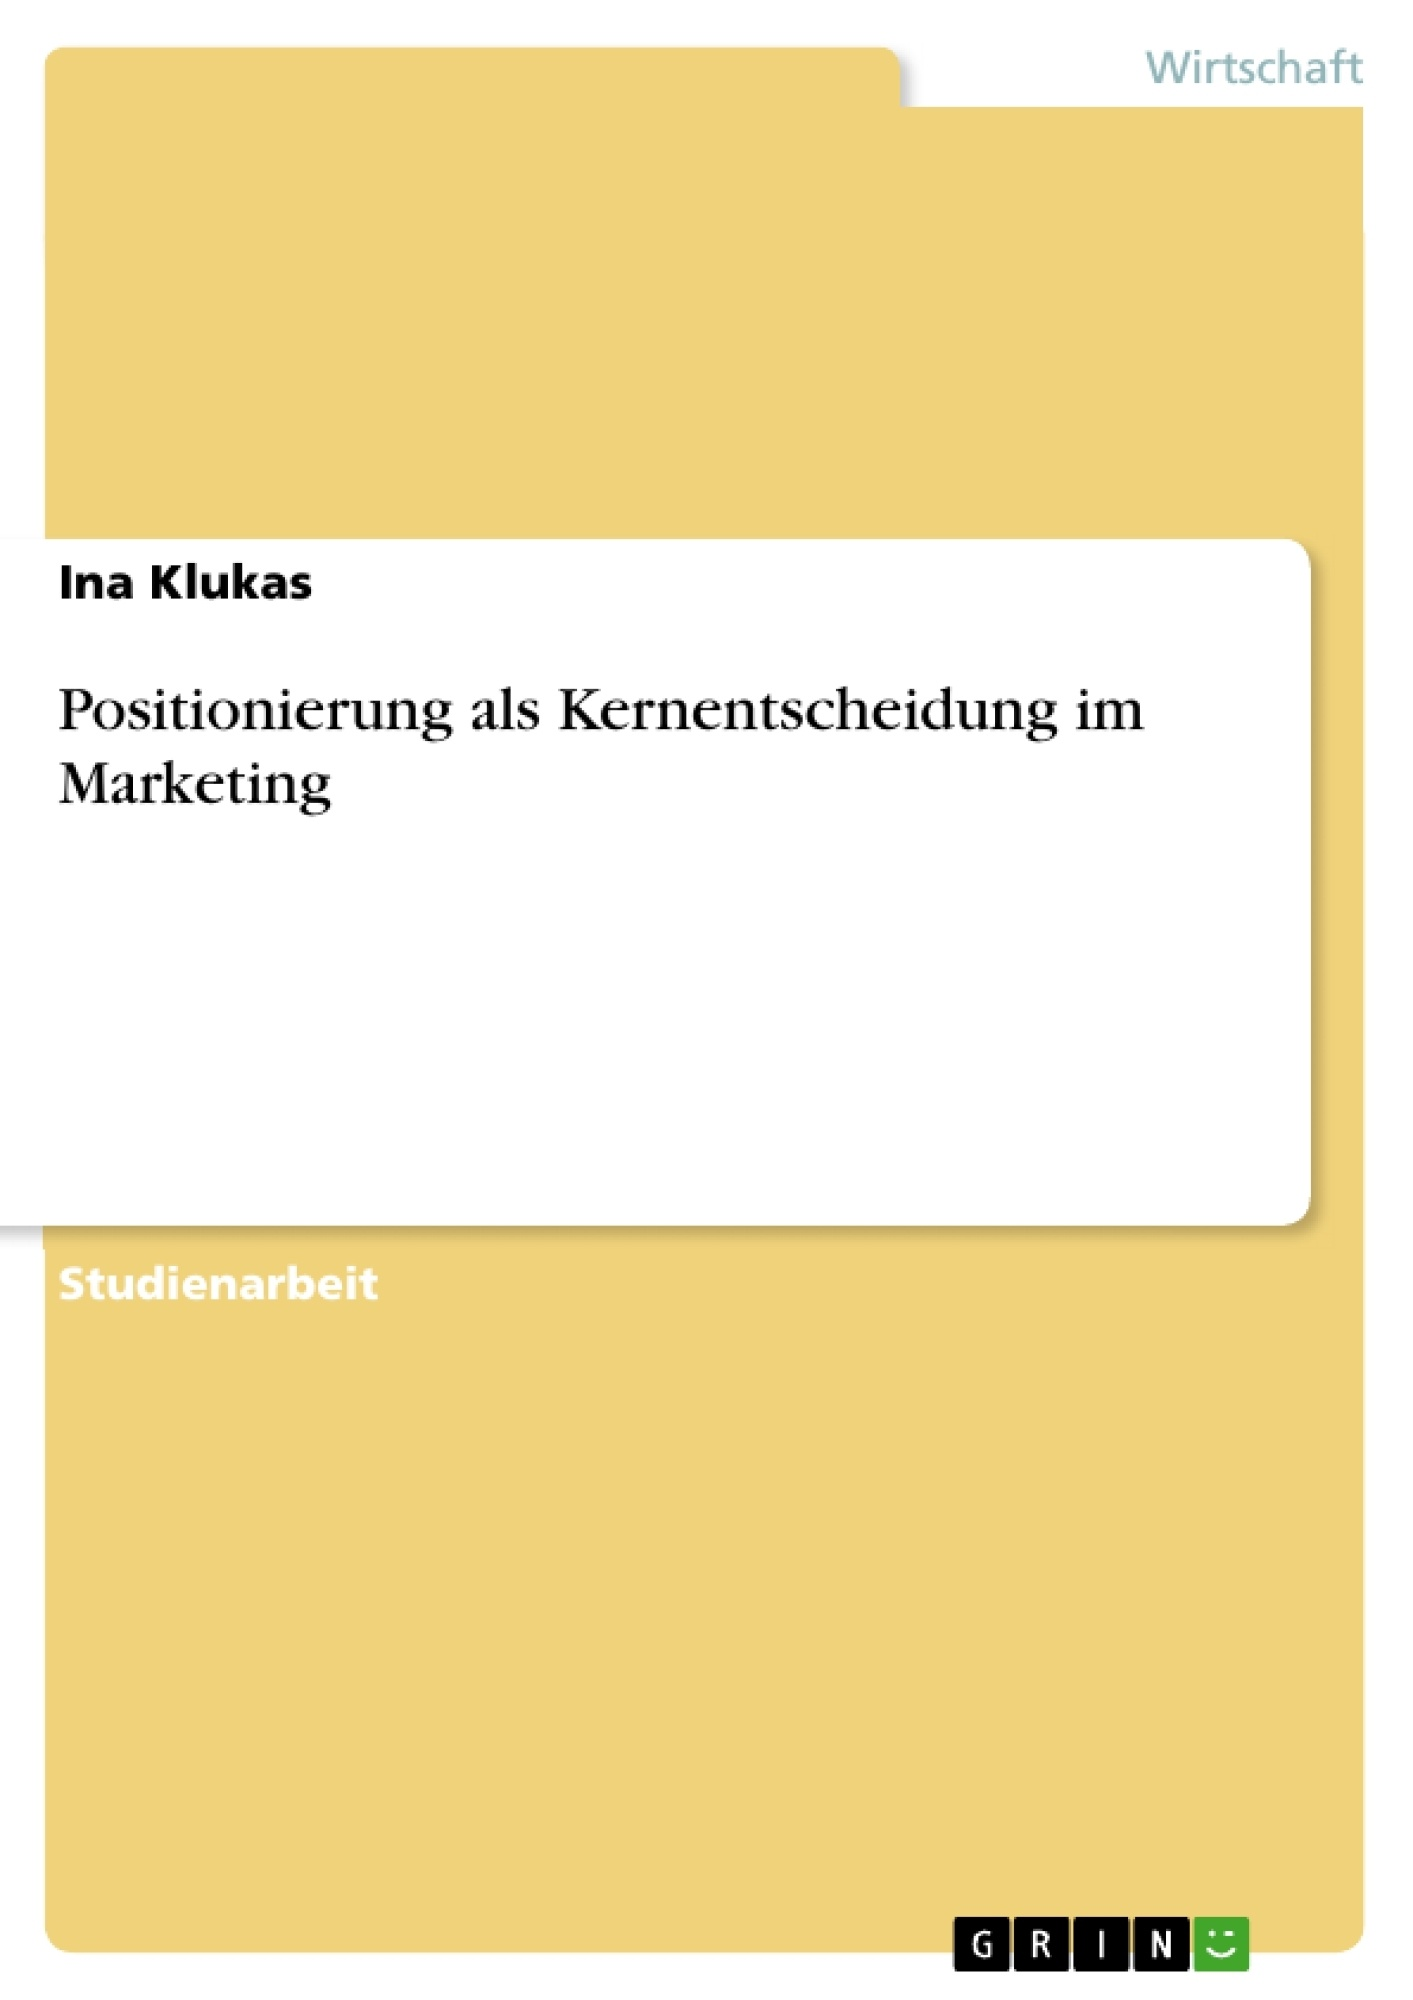 Titel: Positionierung als Kernentscheidung im Marketing